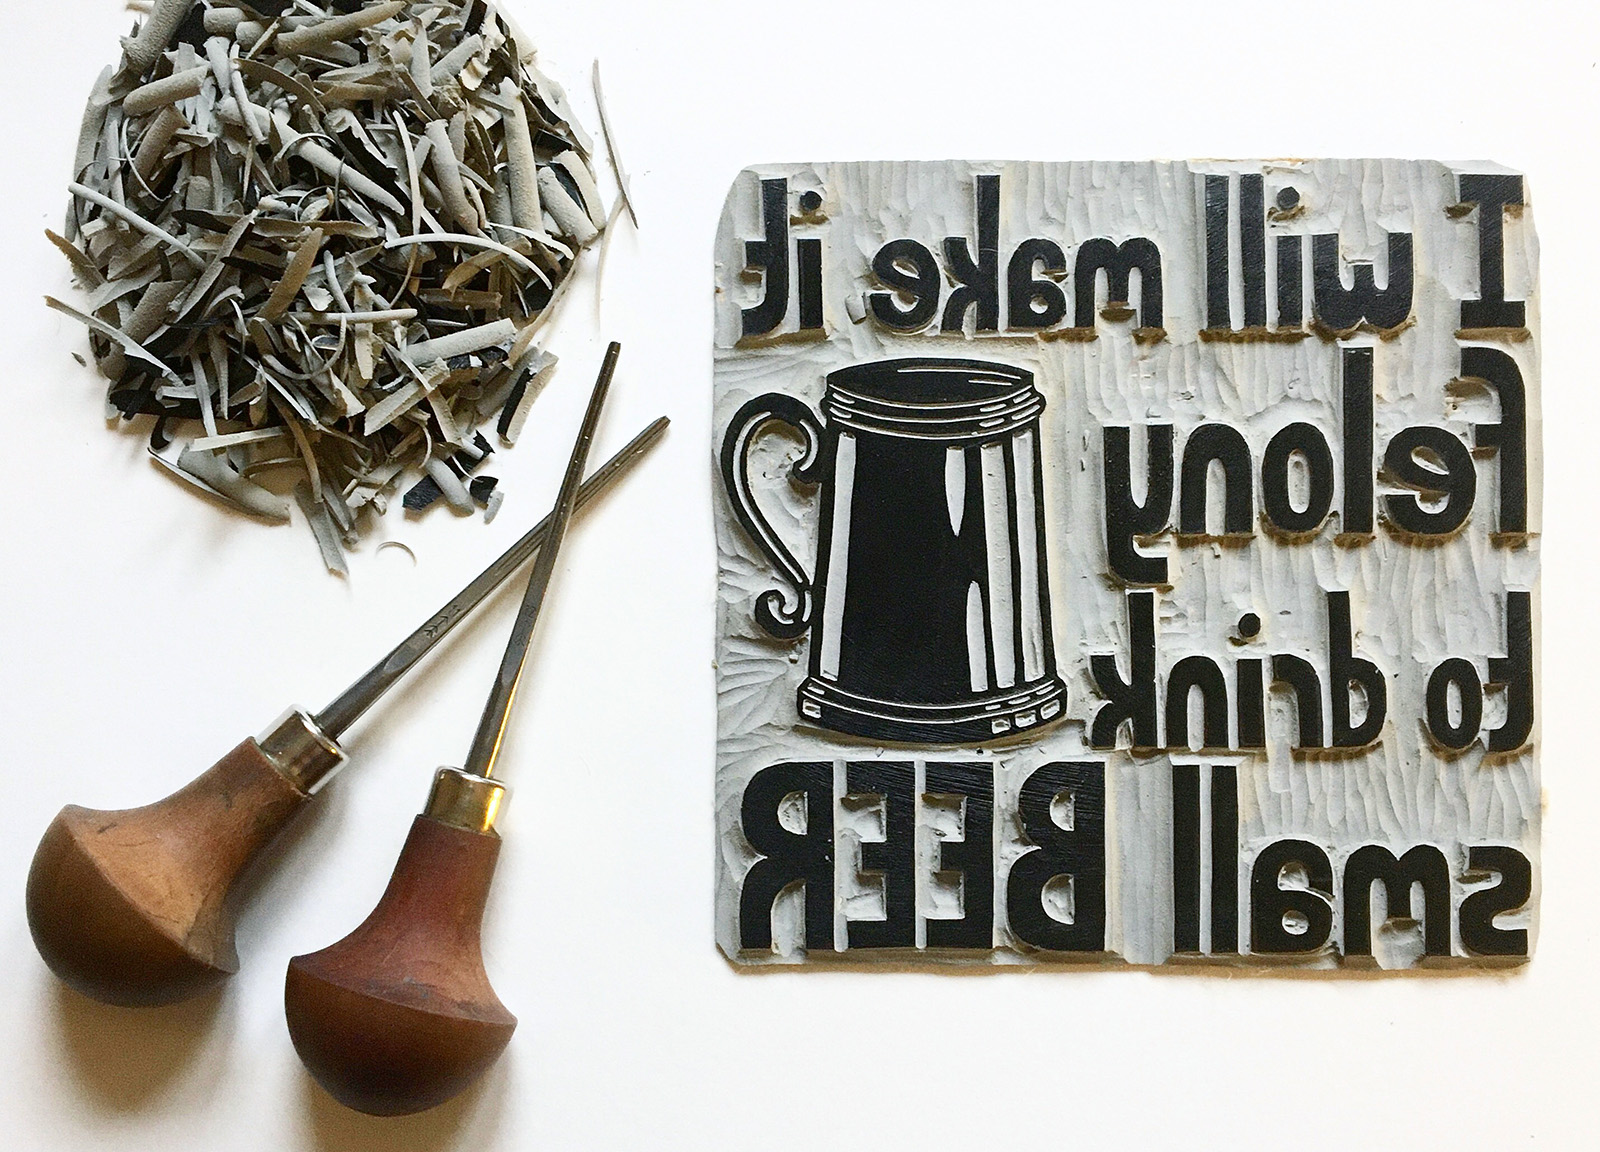 Carving tools lay next to a block with a print of a beer tankard and the text: I will make it felony to drink small beer, in reverse